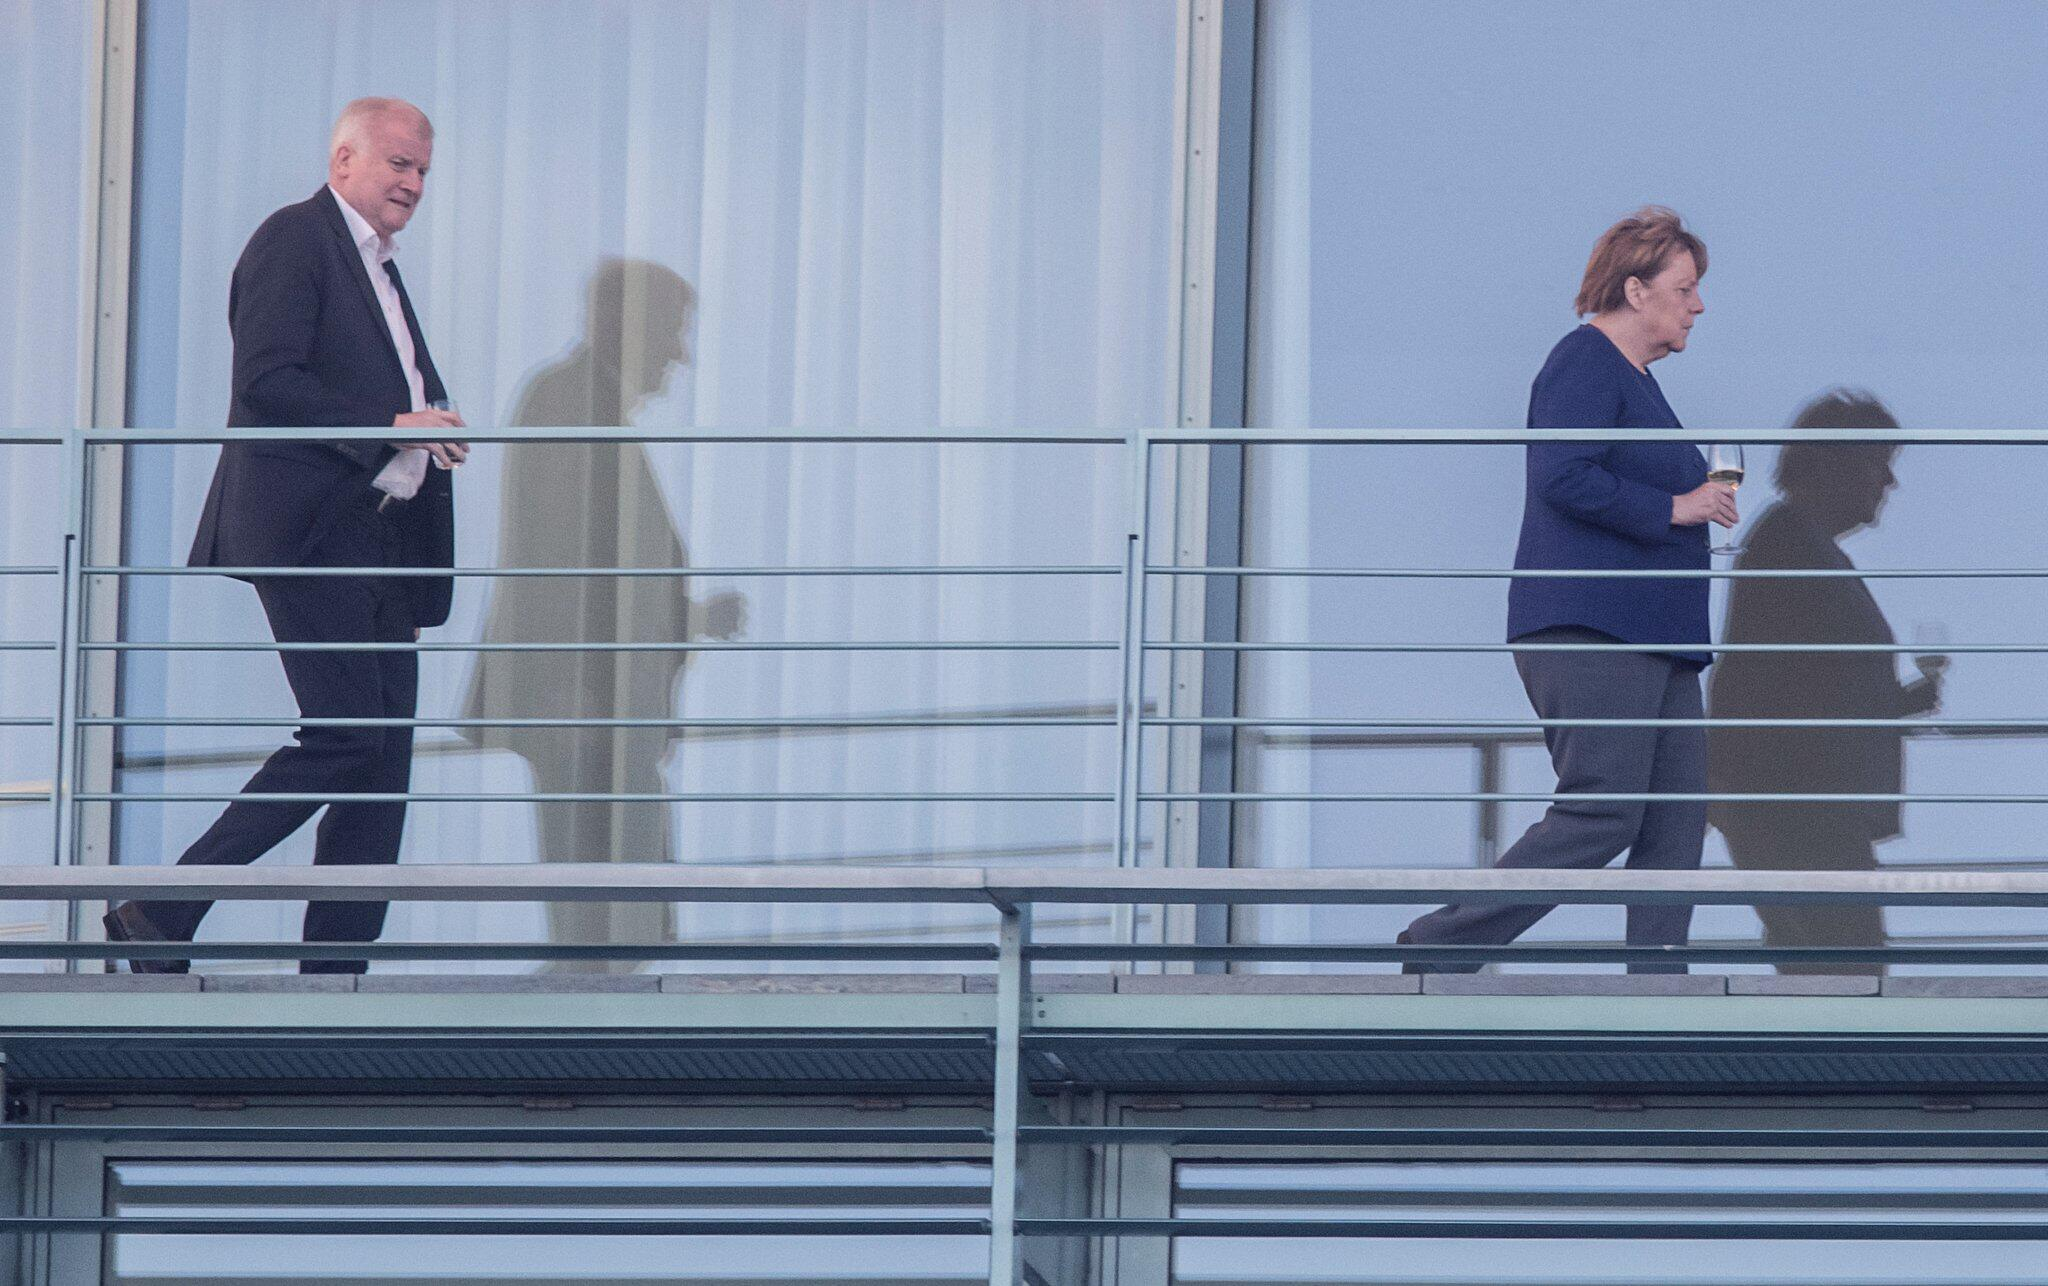 Bild zu Merkel meets Seehofer at the German chancellery